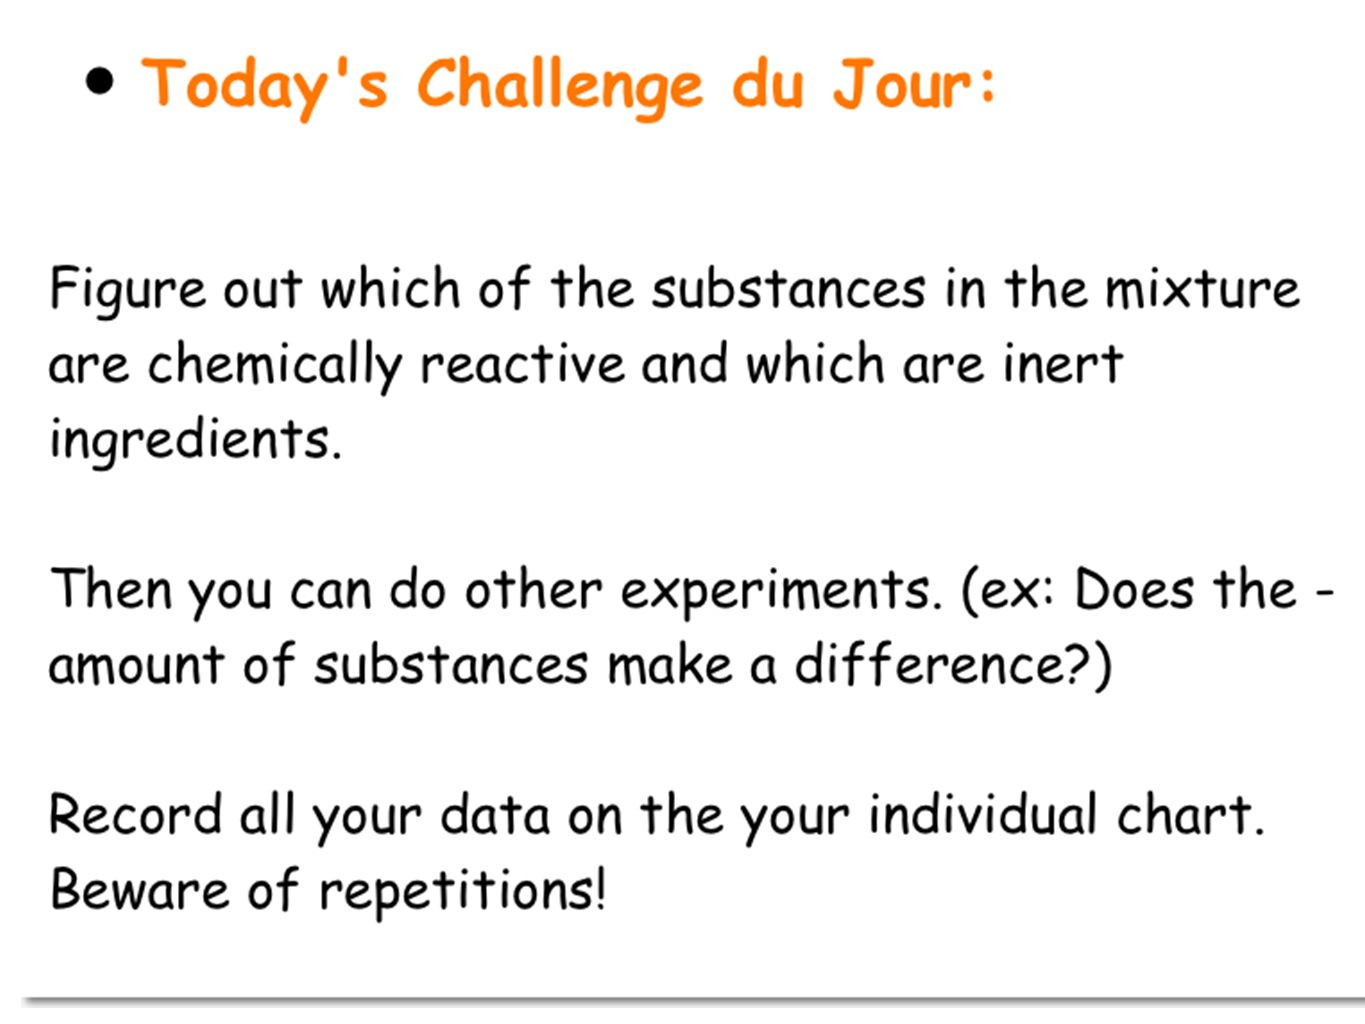 Today s Challenge du Jour: Figure out which of the substances in the mixture are chemically reactive and which are inert ingredients.